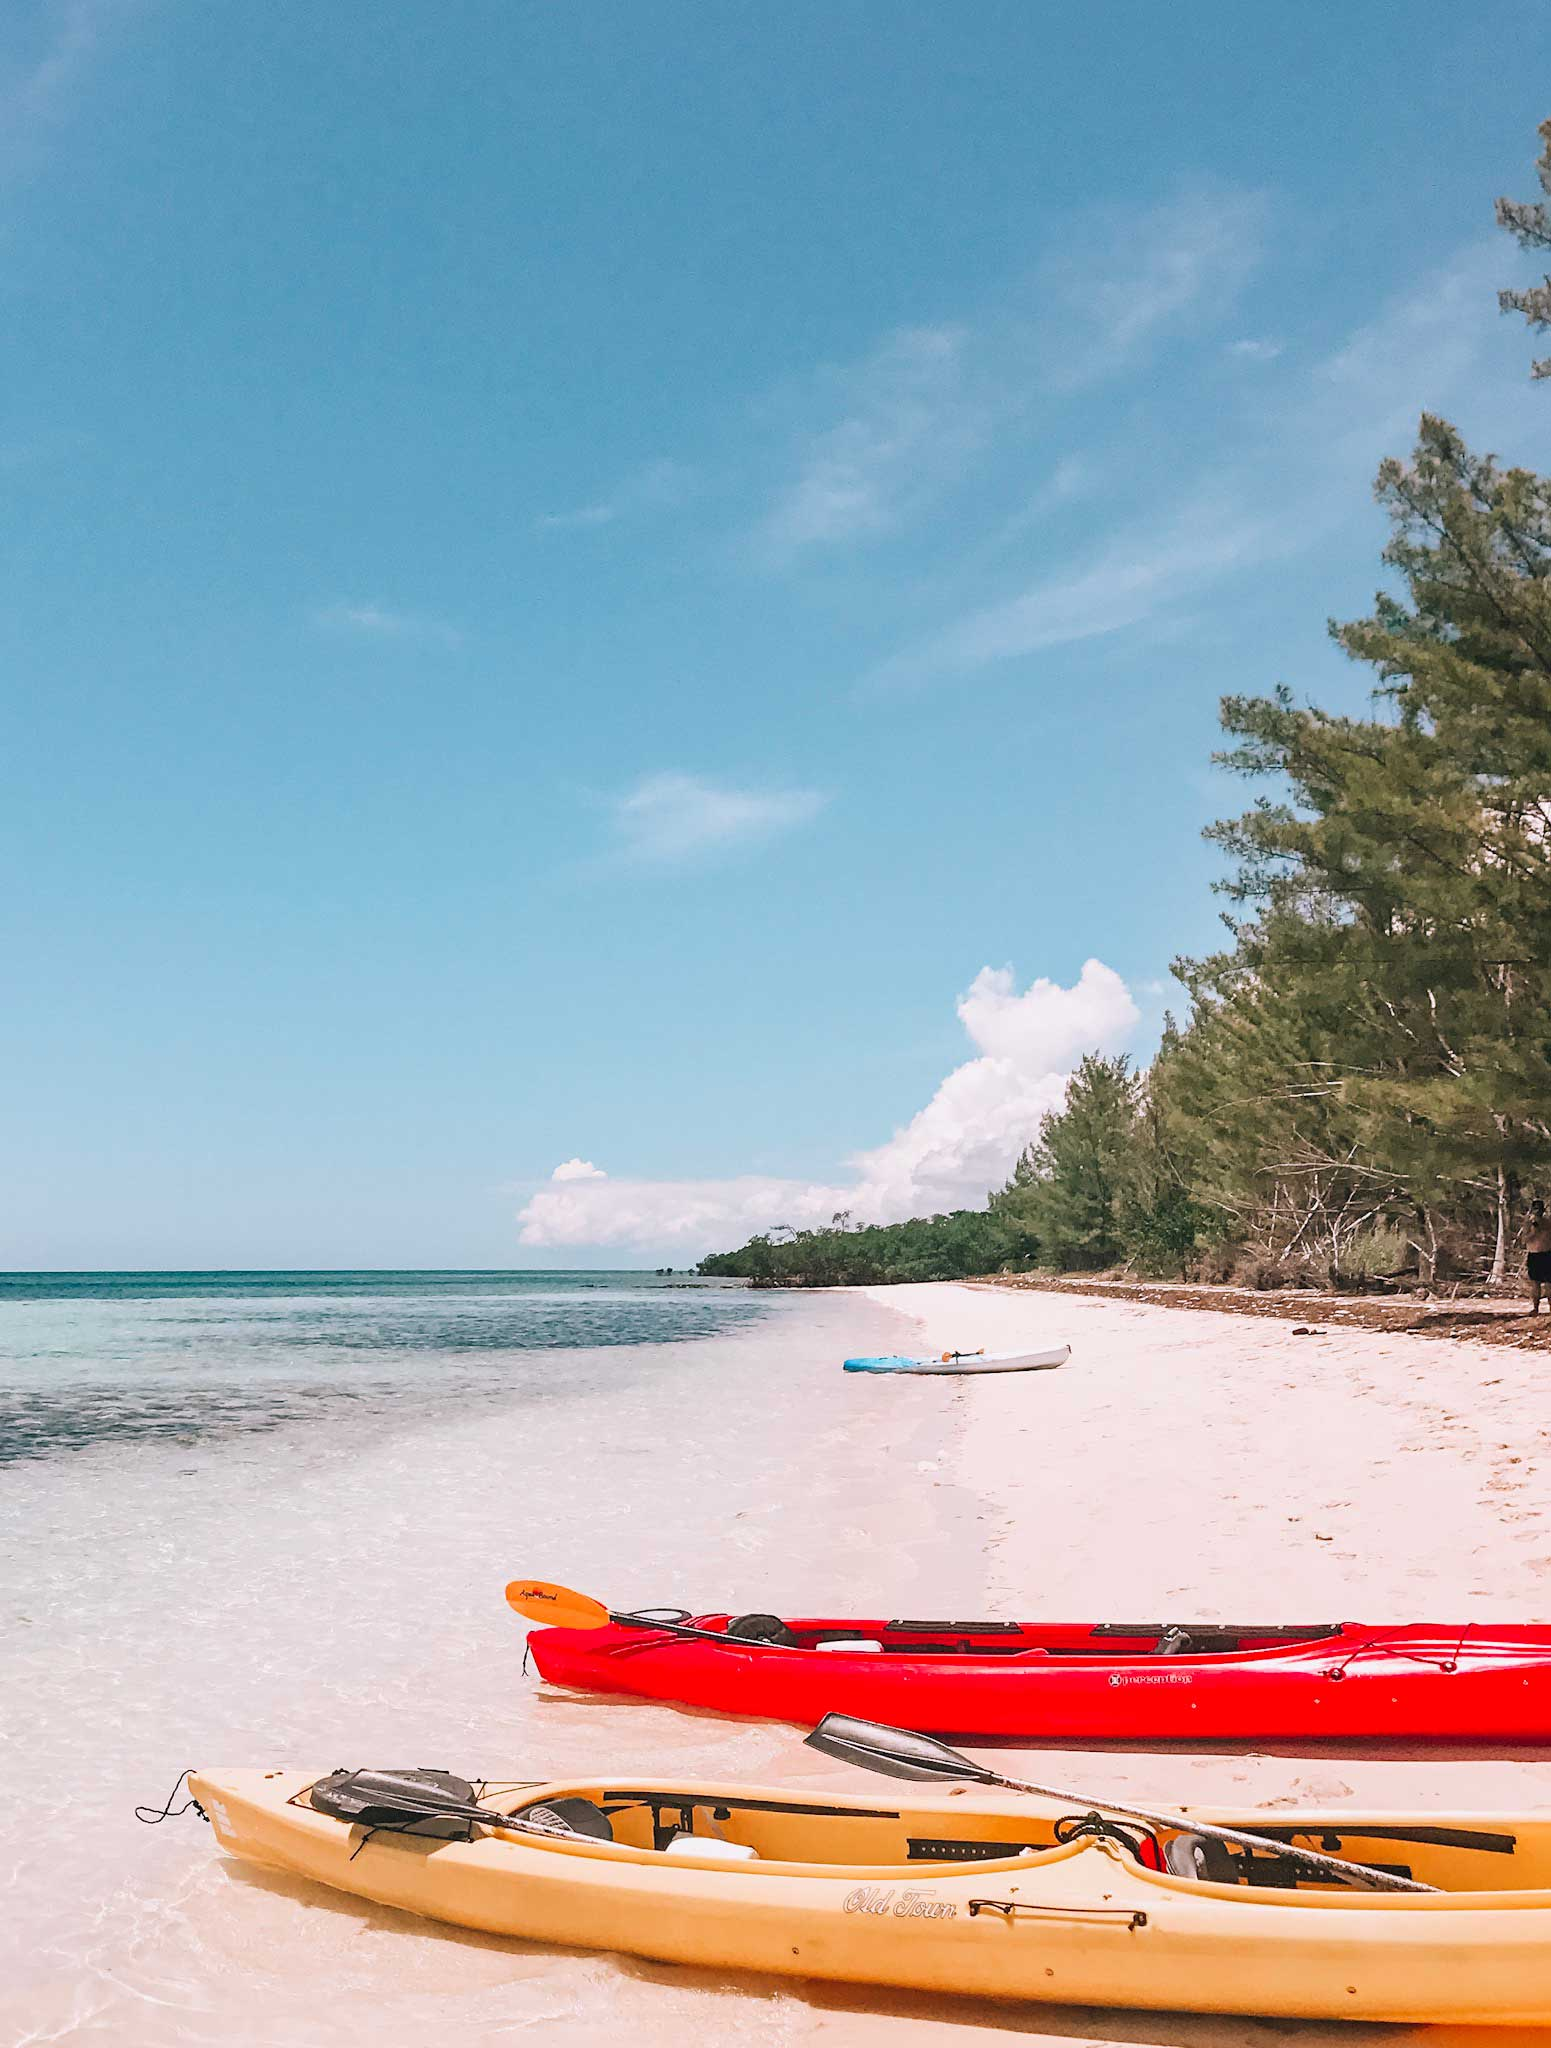 Find some of the best beaches in the world on Grand Bahama island. The complete guide covers everything you need to know  including the best beaches in Freeport Bahamas.